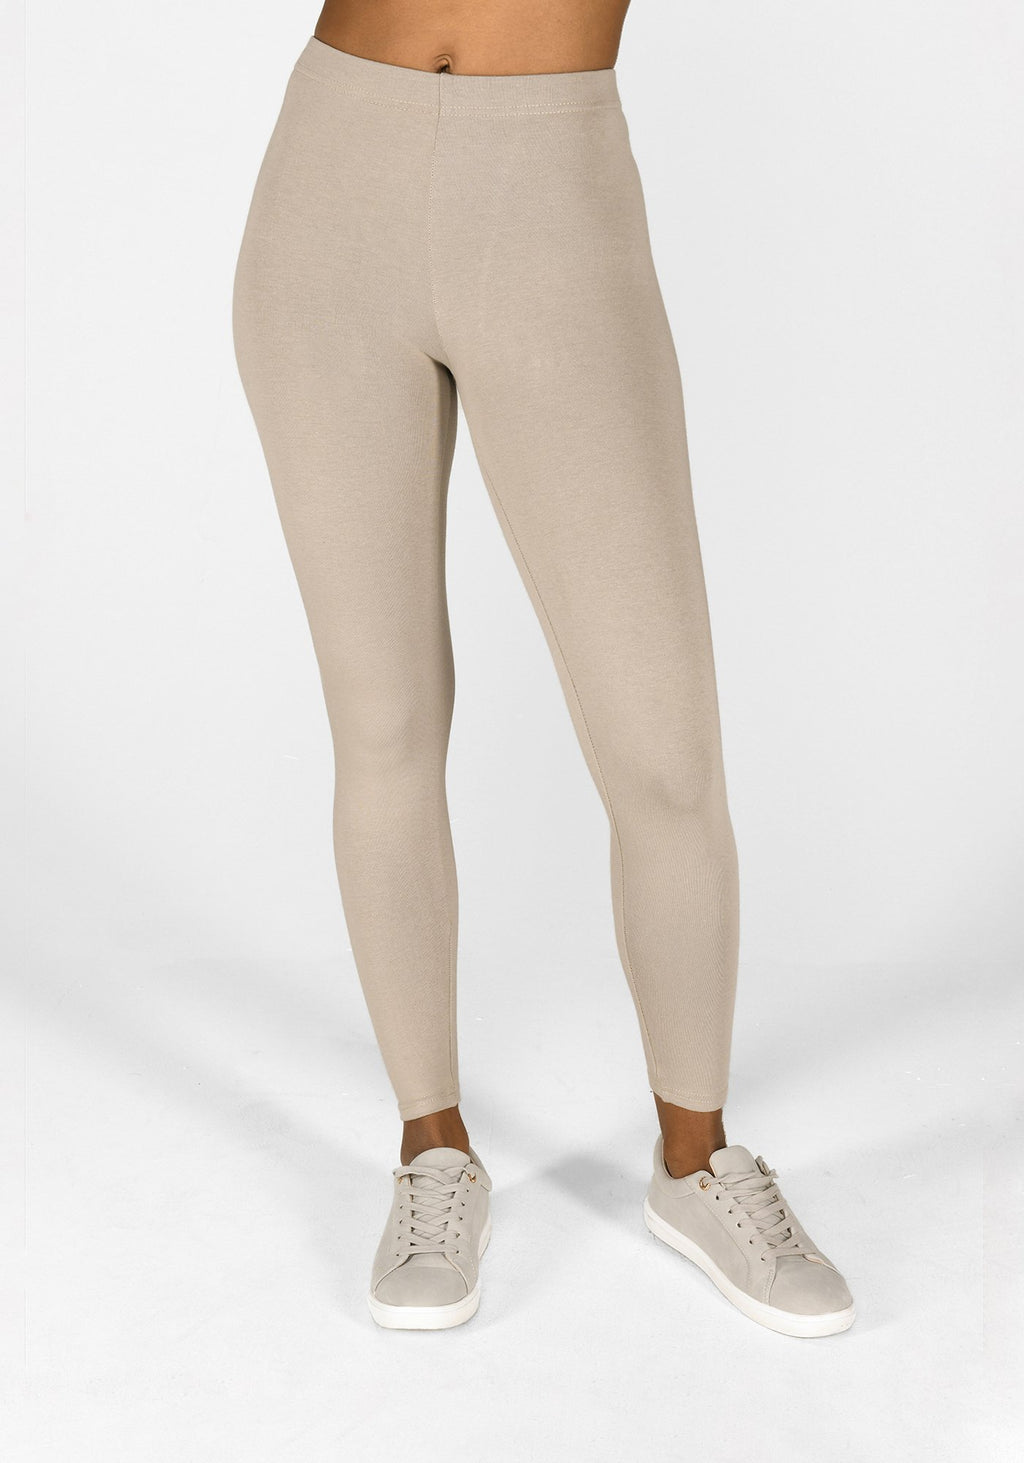 oatmeal beige leggings 1